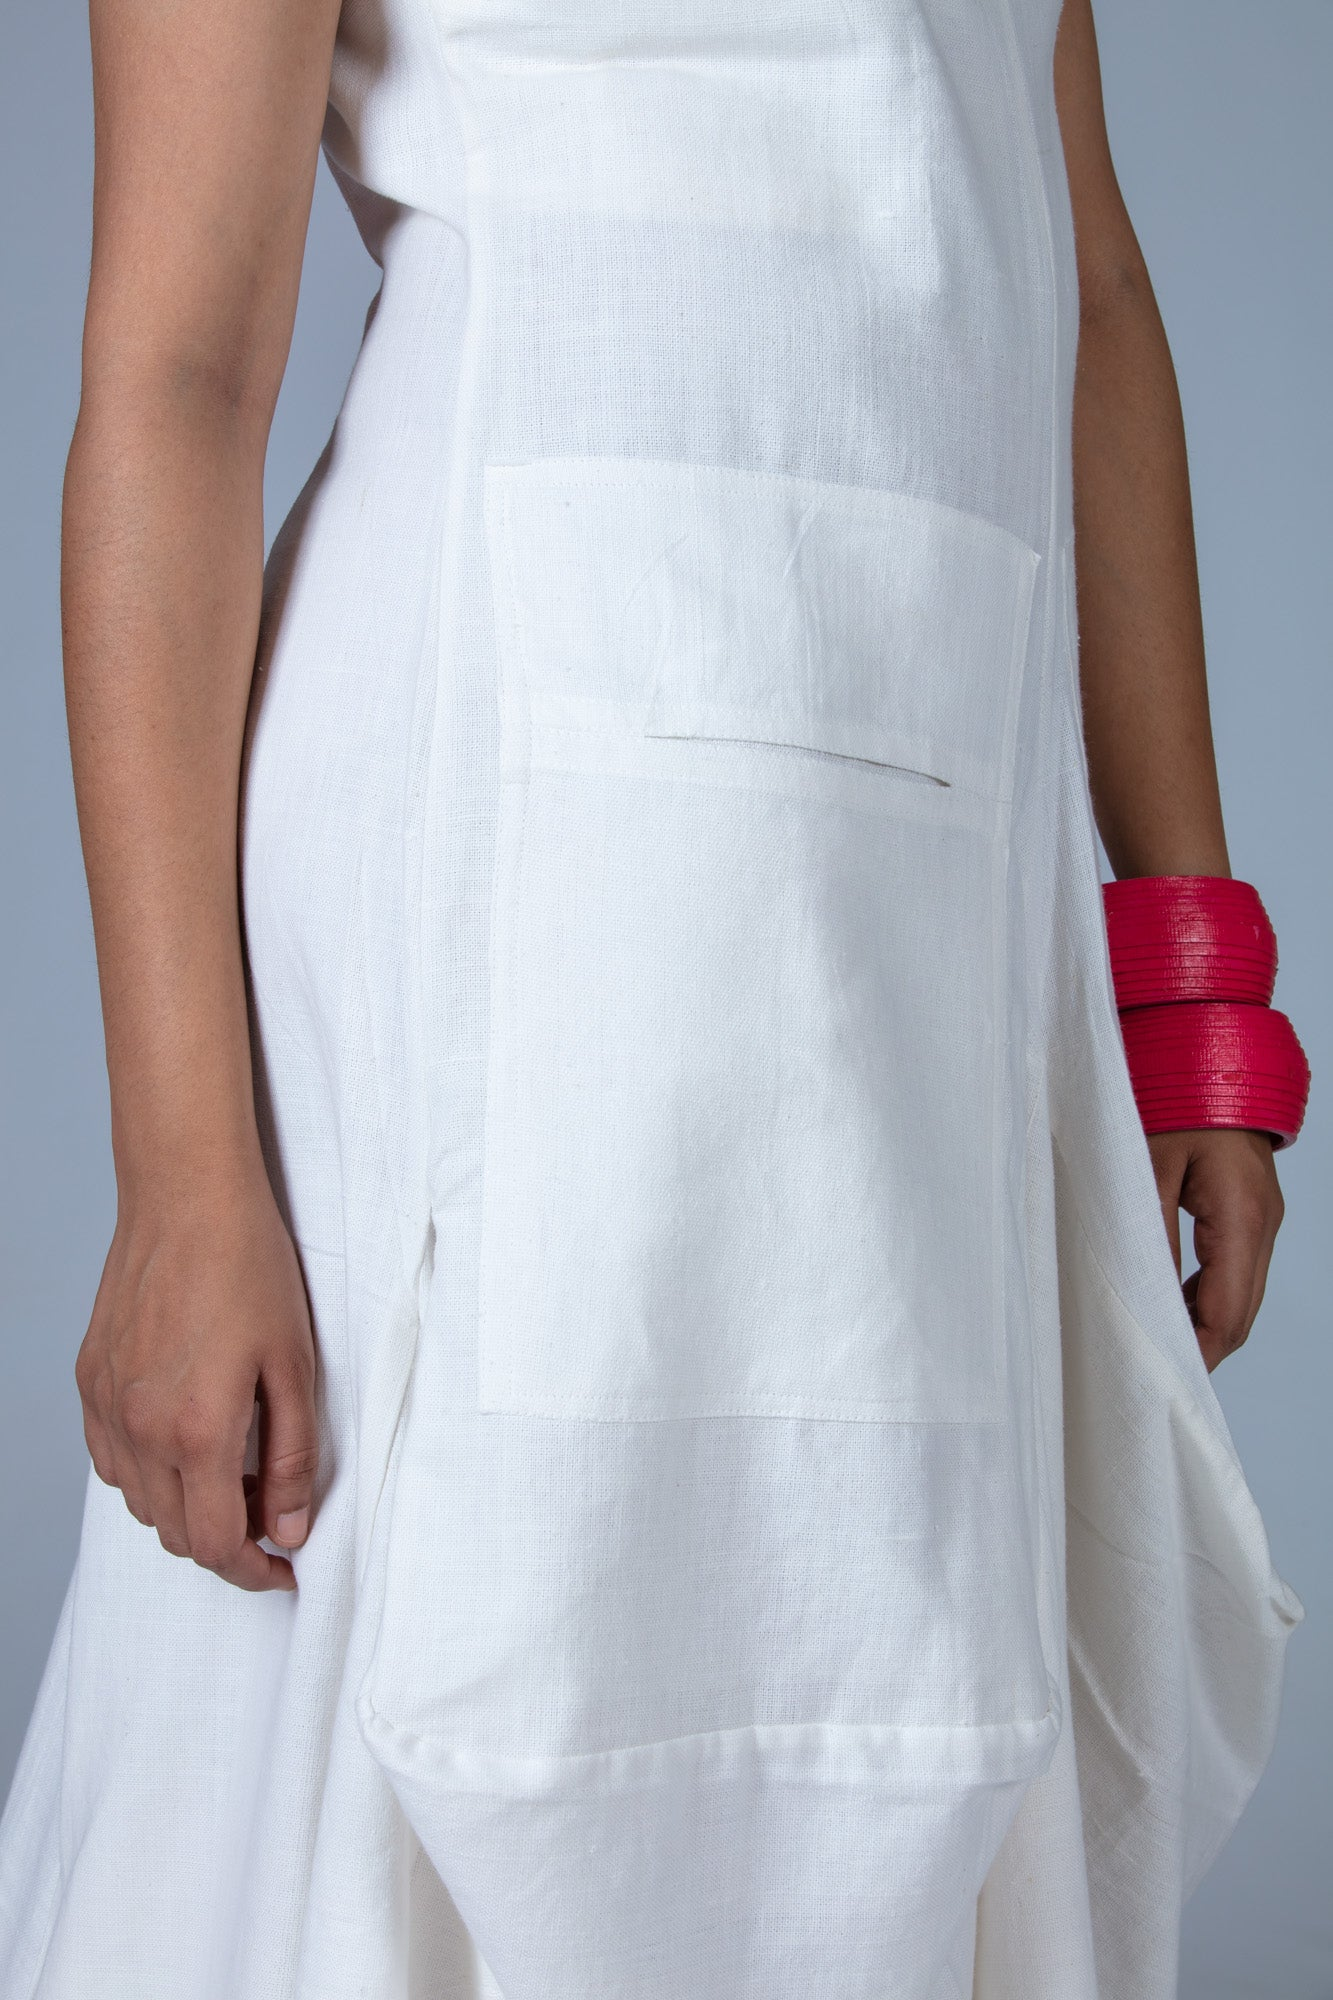 White Khadi Dress - JESSICA - Upasana Design Studio